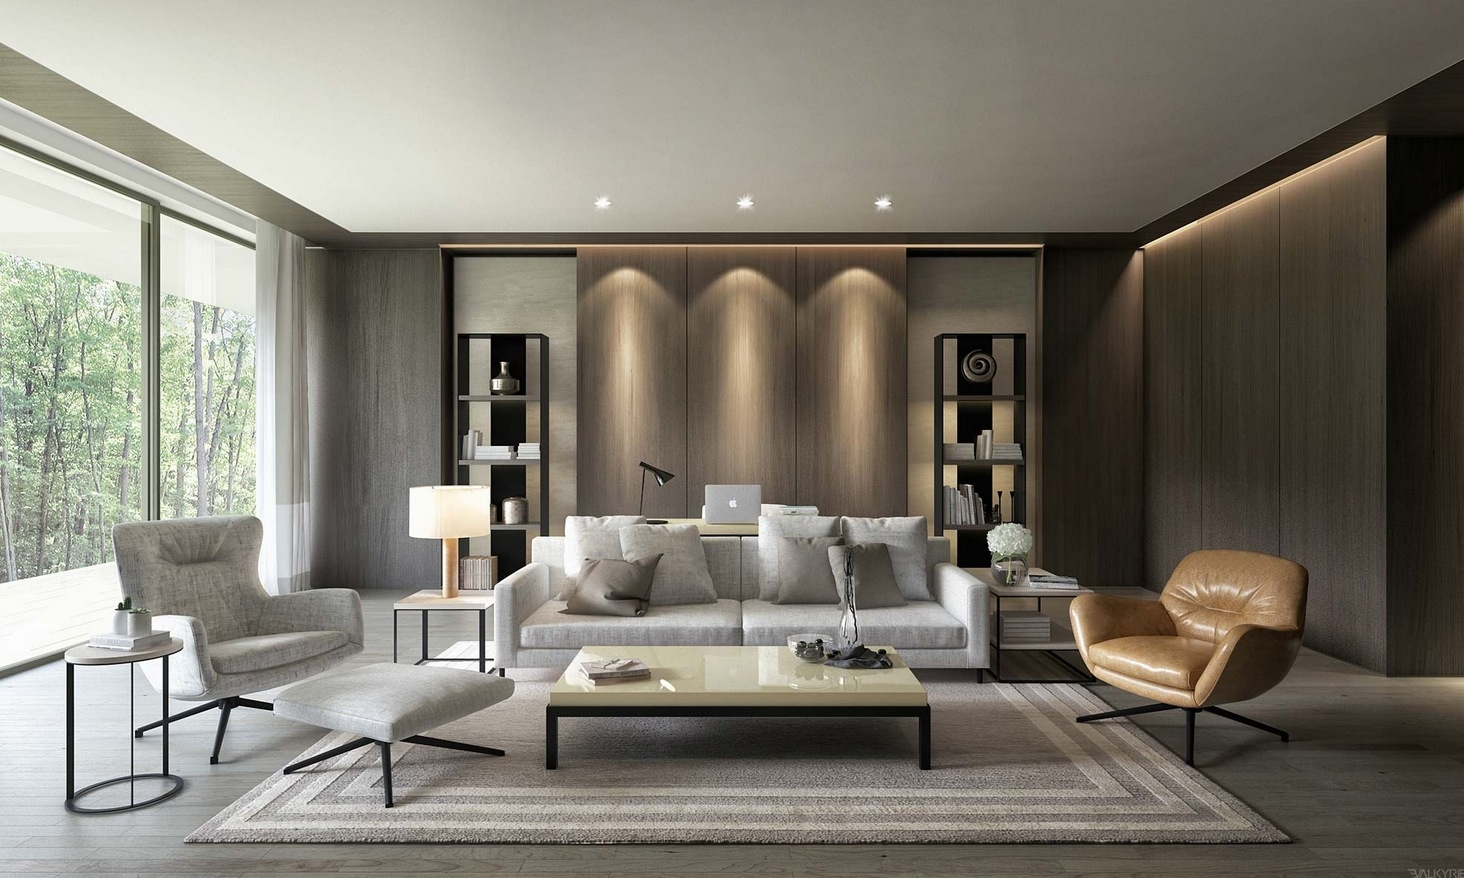 Decorating Living Room Design Ideas With An Eclectic Decor